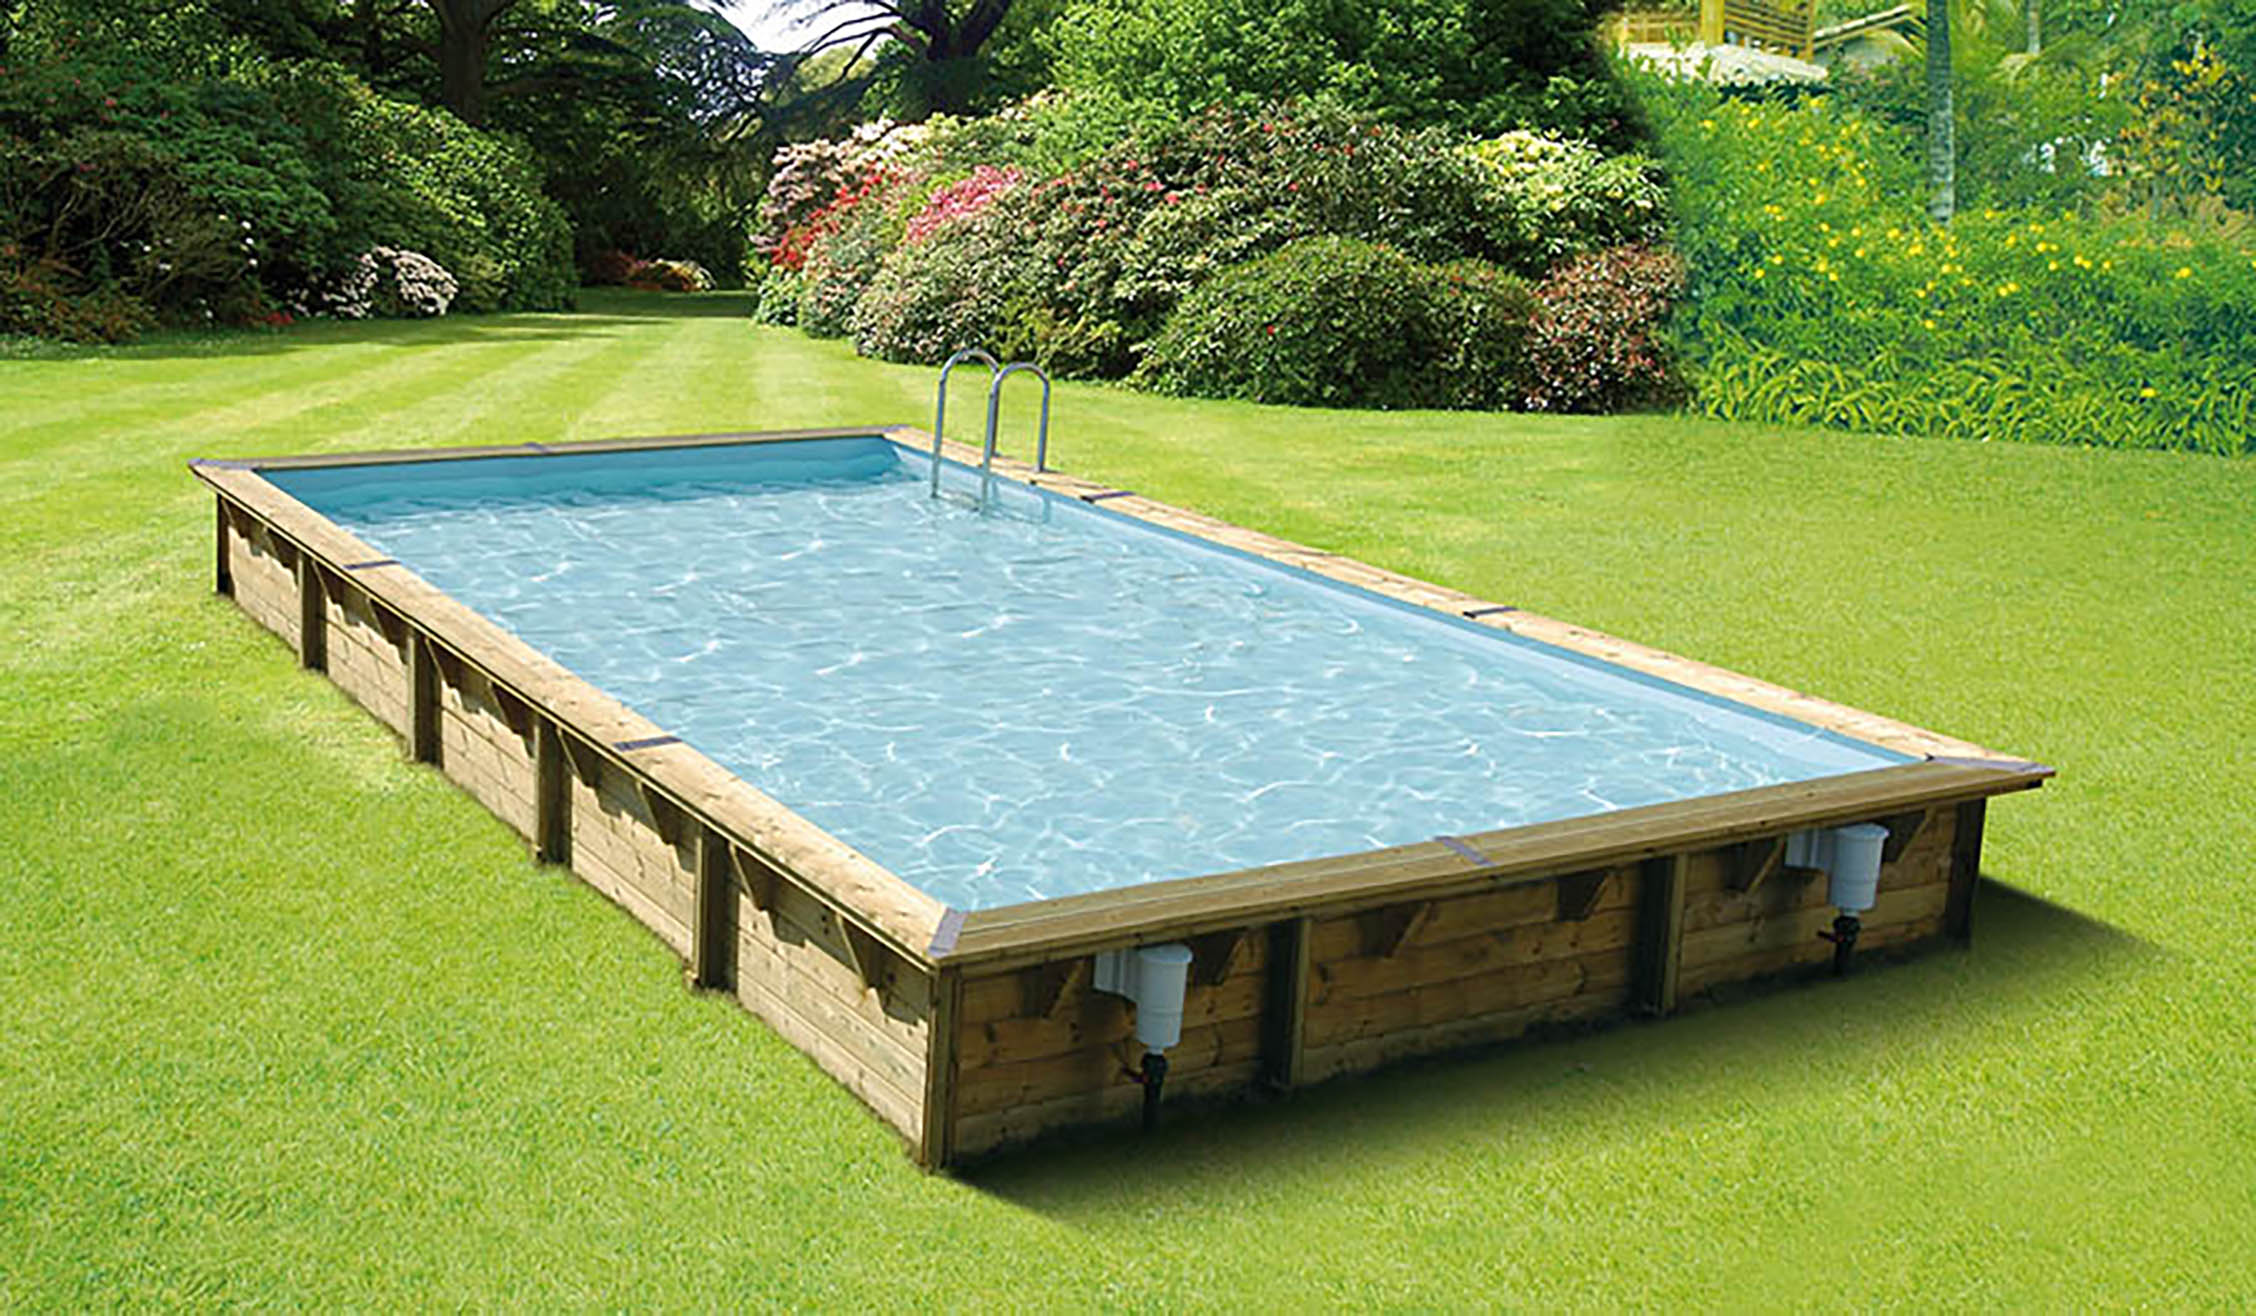 Amenagement piscine bois hors sol id es for Piscine hors sol oogarden